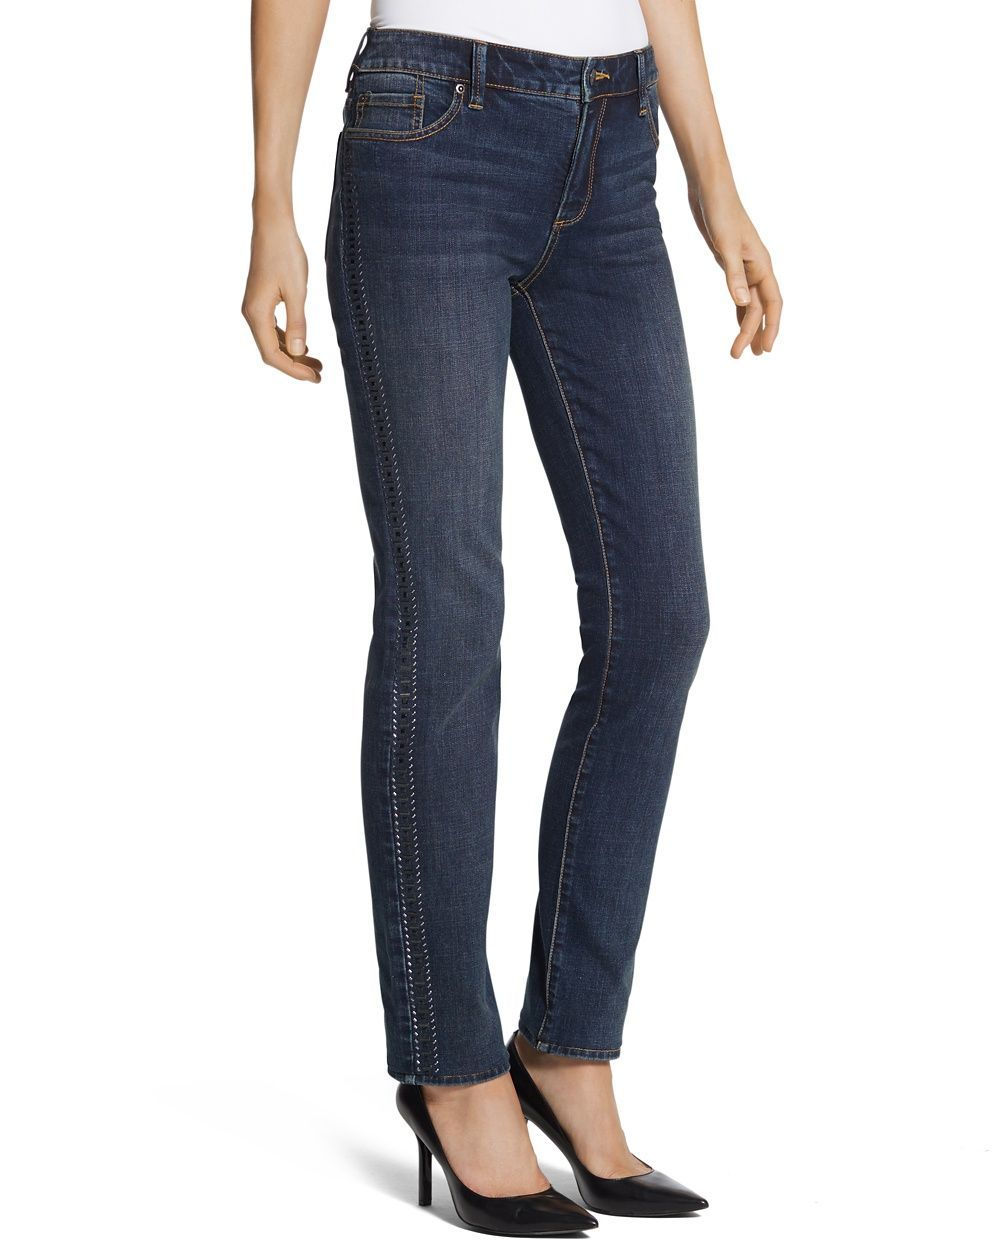 d954a6fcbc67 Chico s Women s So Slimming by Chico s Side Embellished Jeans ...